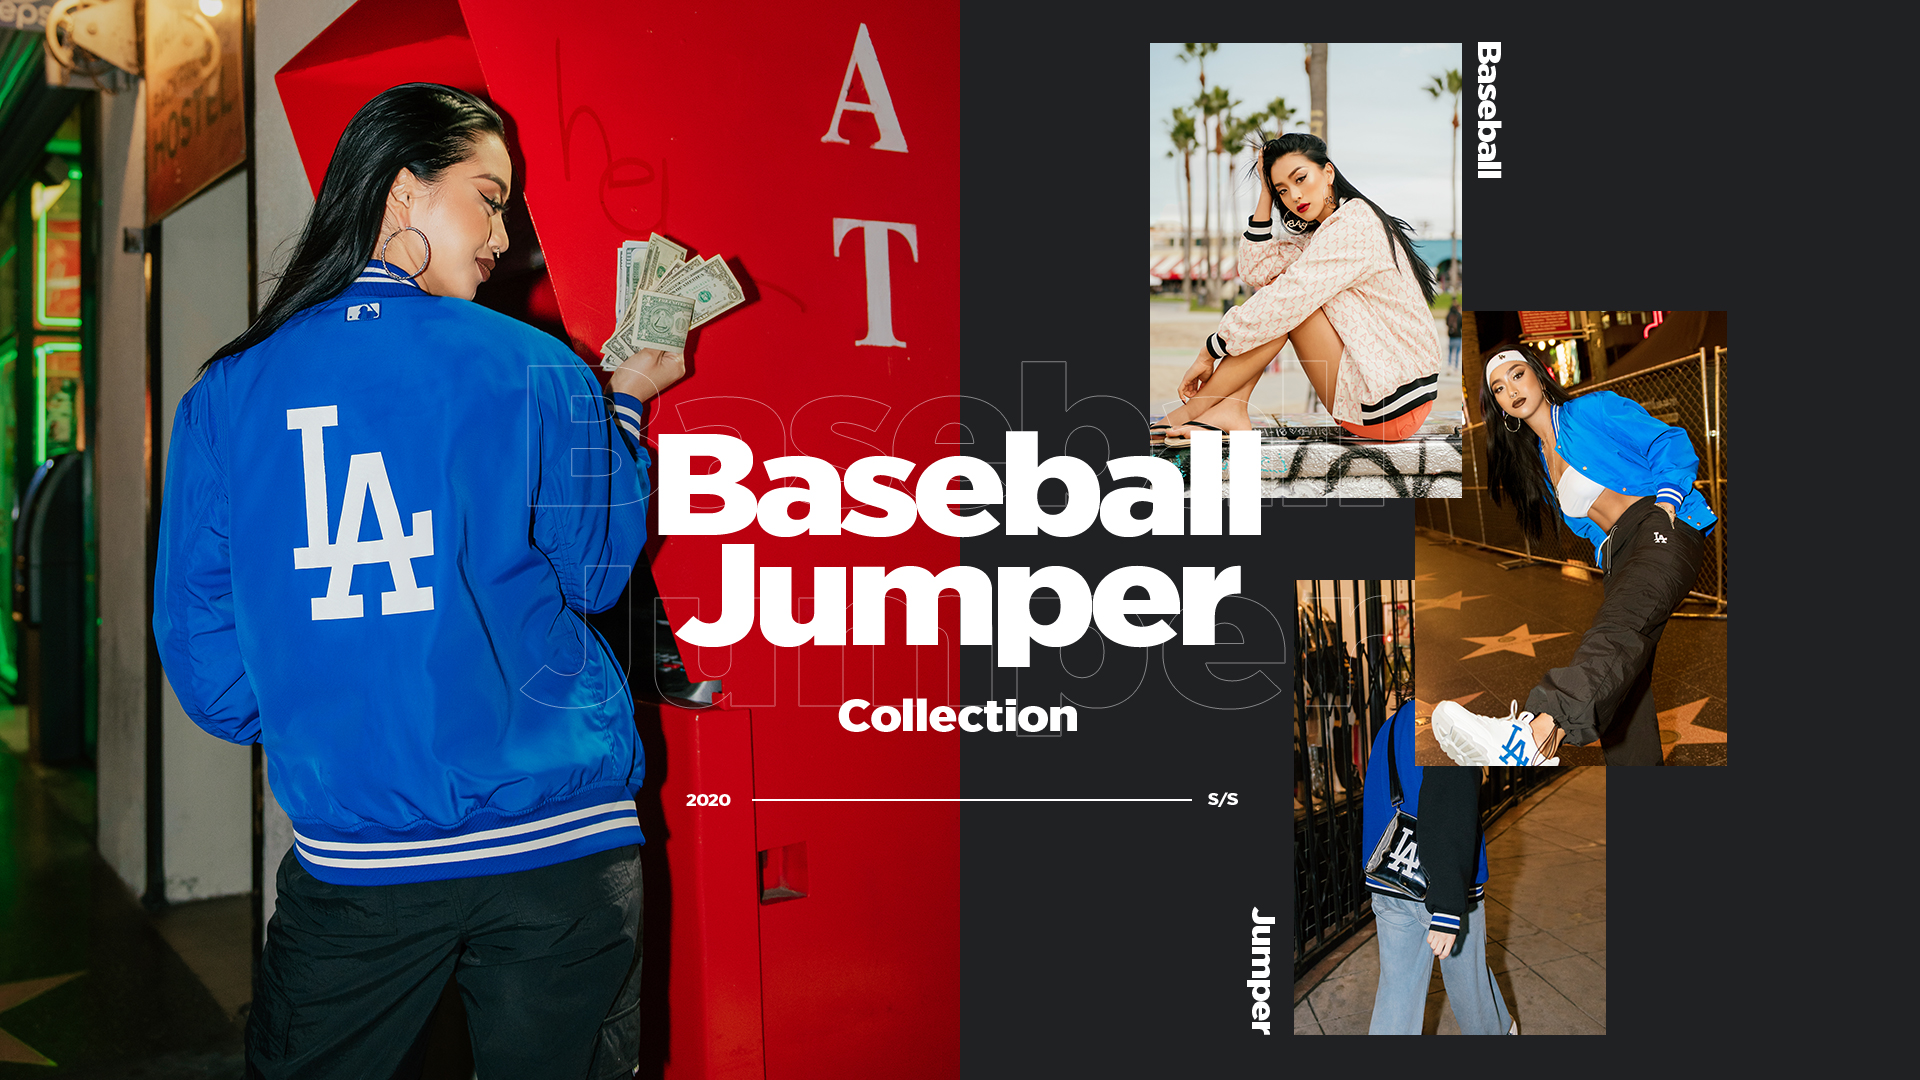 Baseball Jumper Collection